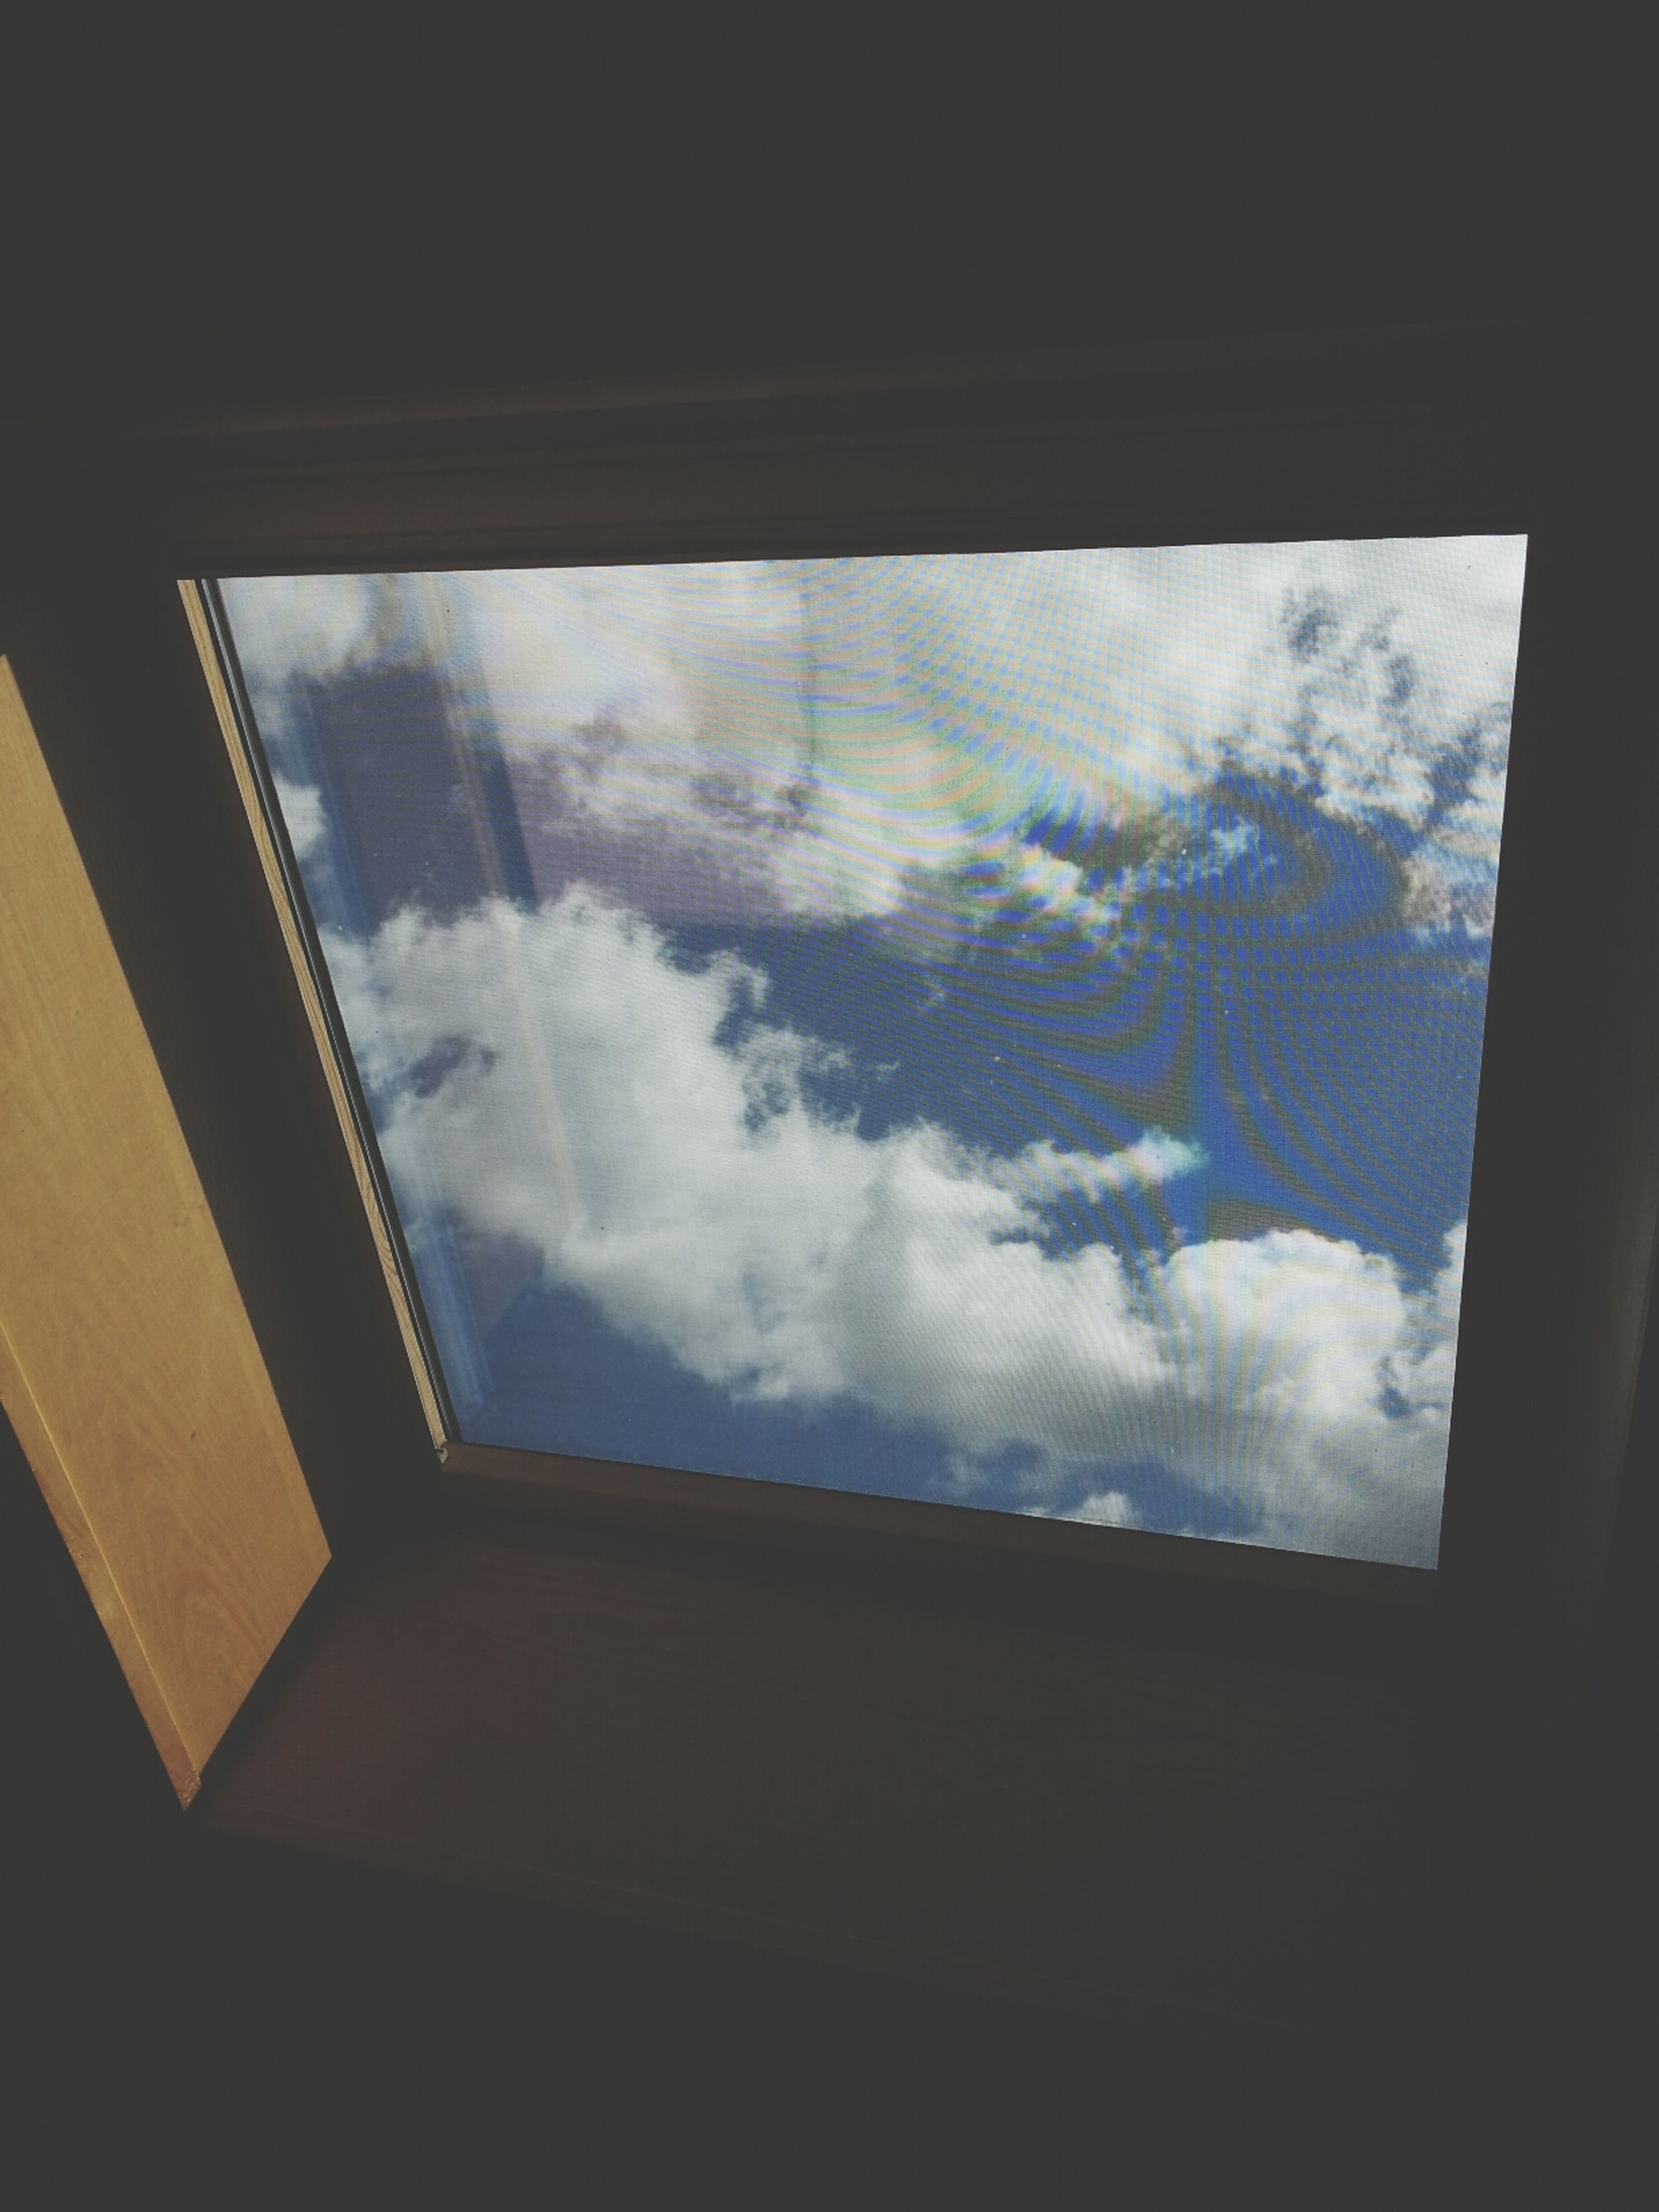 indoors, window, glass - material, transparent, architecture, built structure, sky, low angle view, cloud - sky, glass, day, ceiling, no people, looking through window, building, building exterior, skylight, cloud, reflection, silhouette